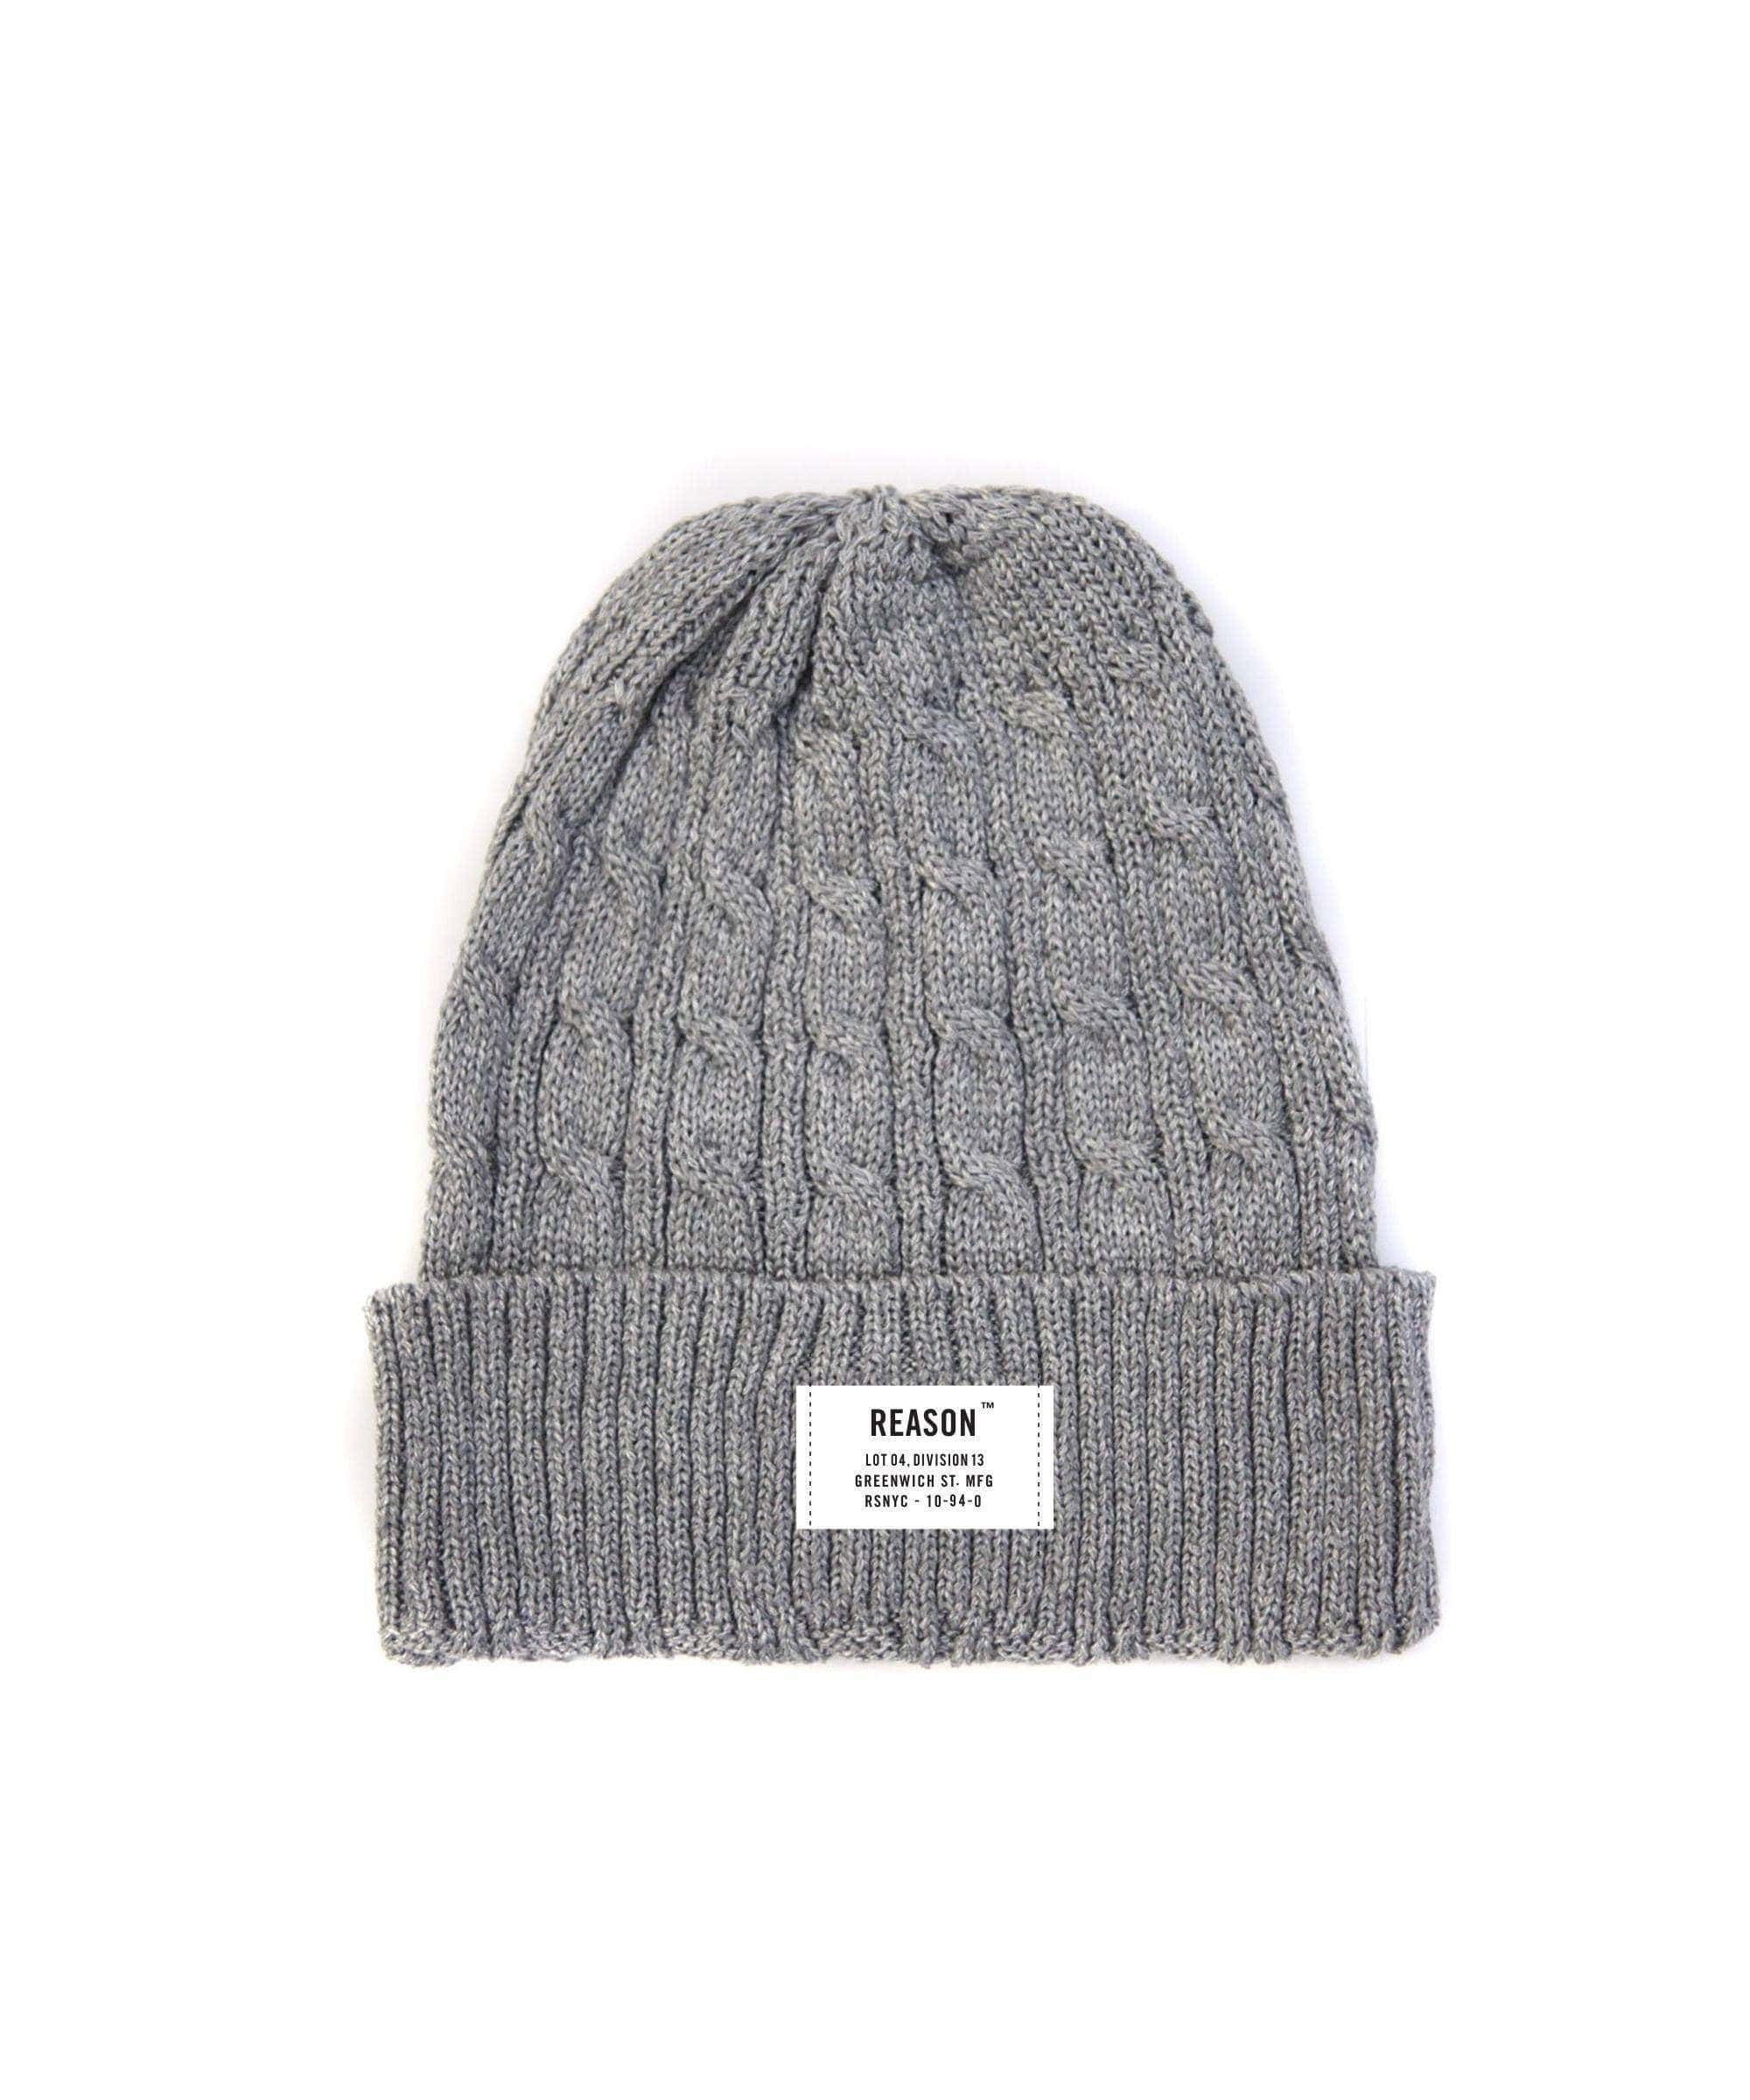 HEATHER GREY FISHERMAN BEANIE - Reason Clothing